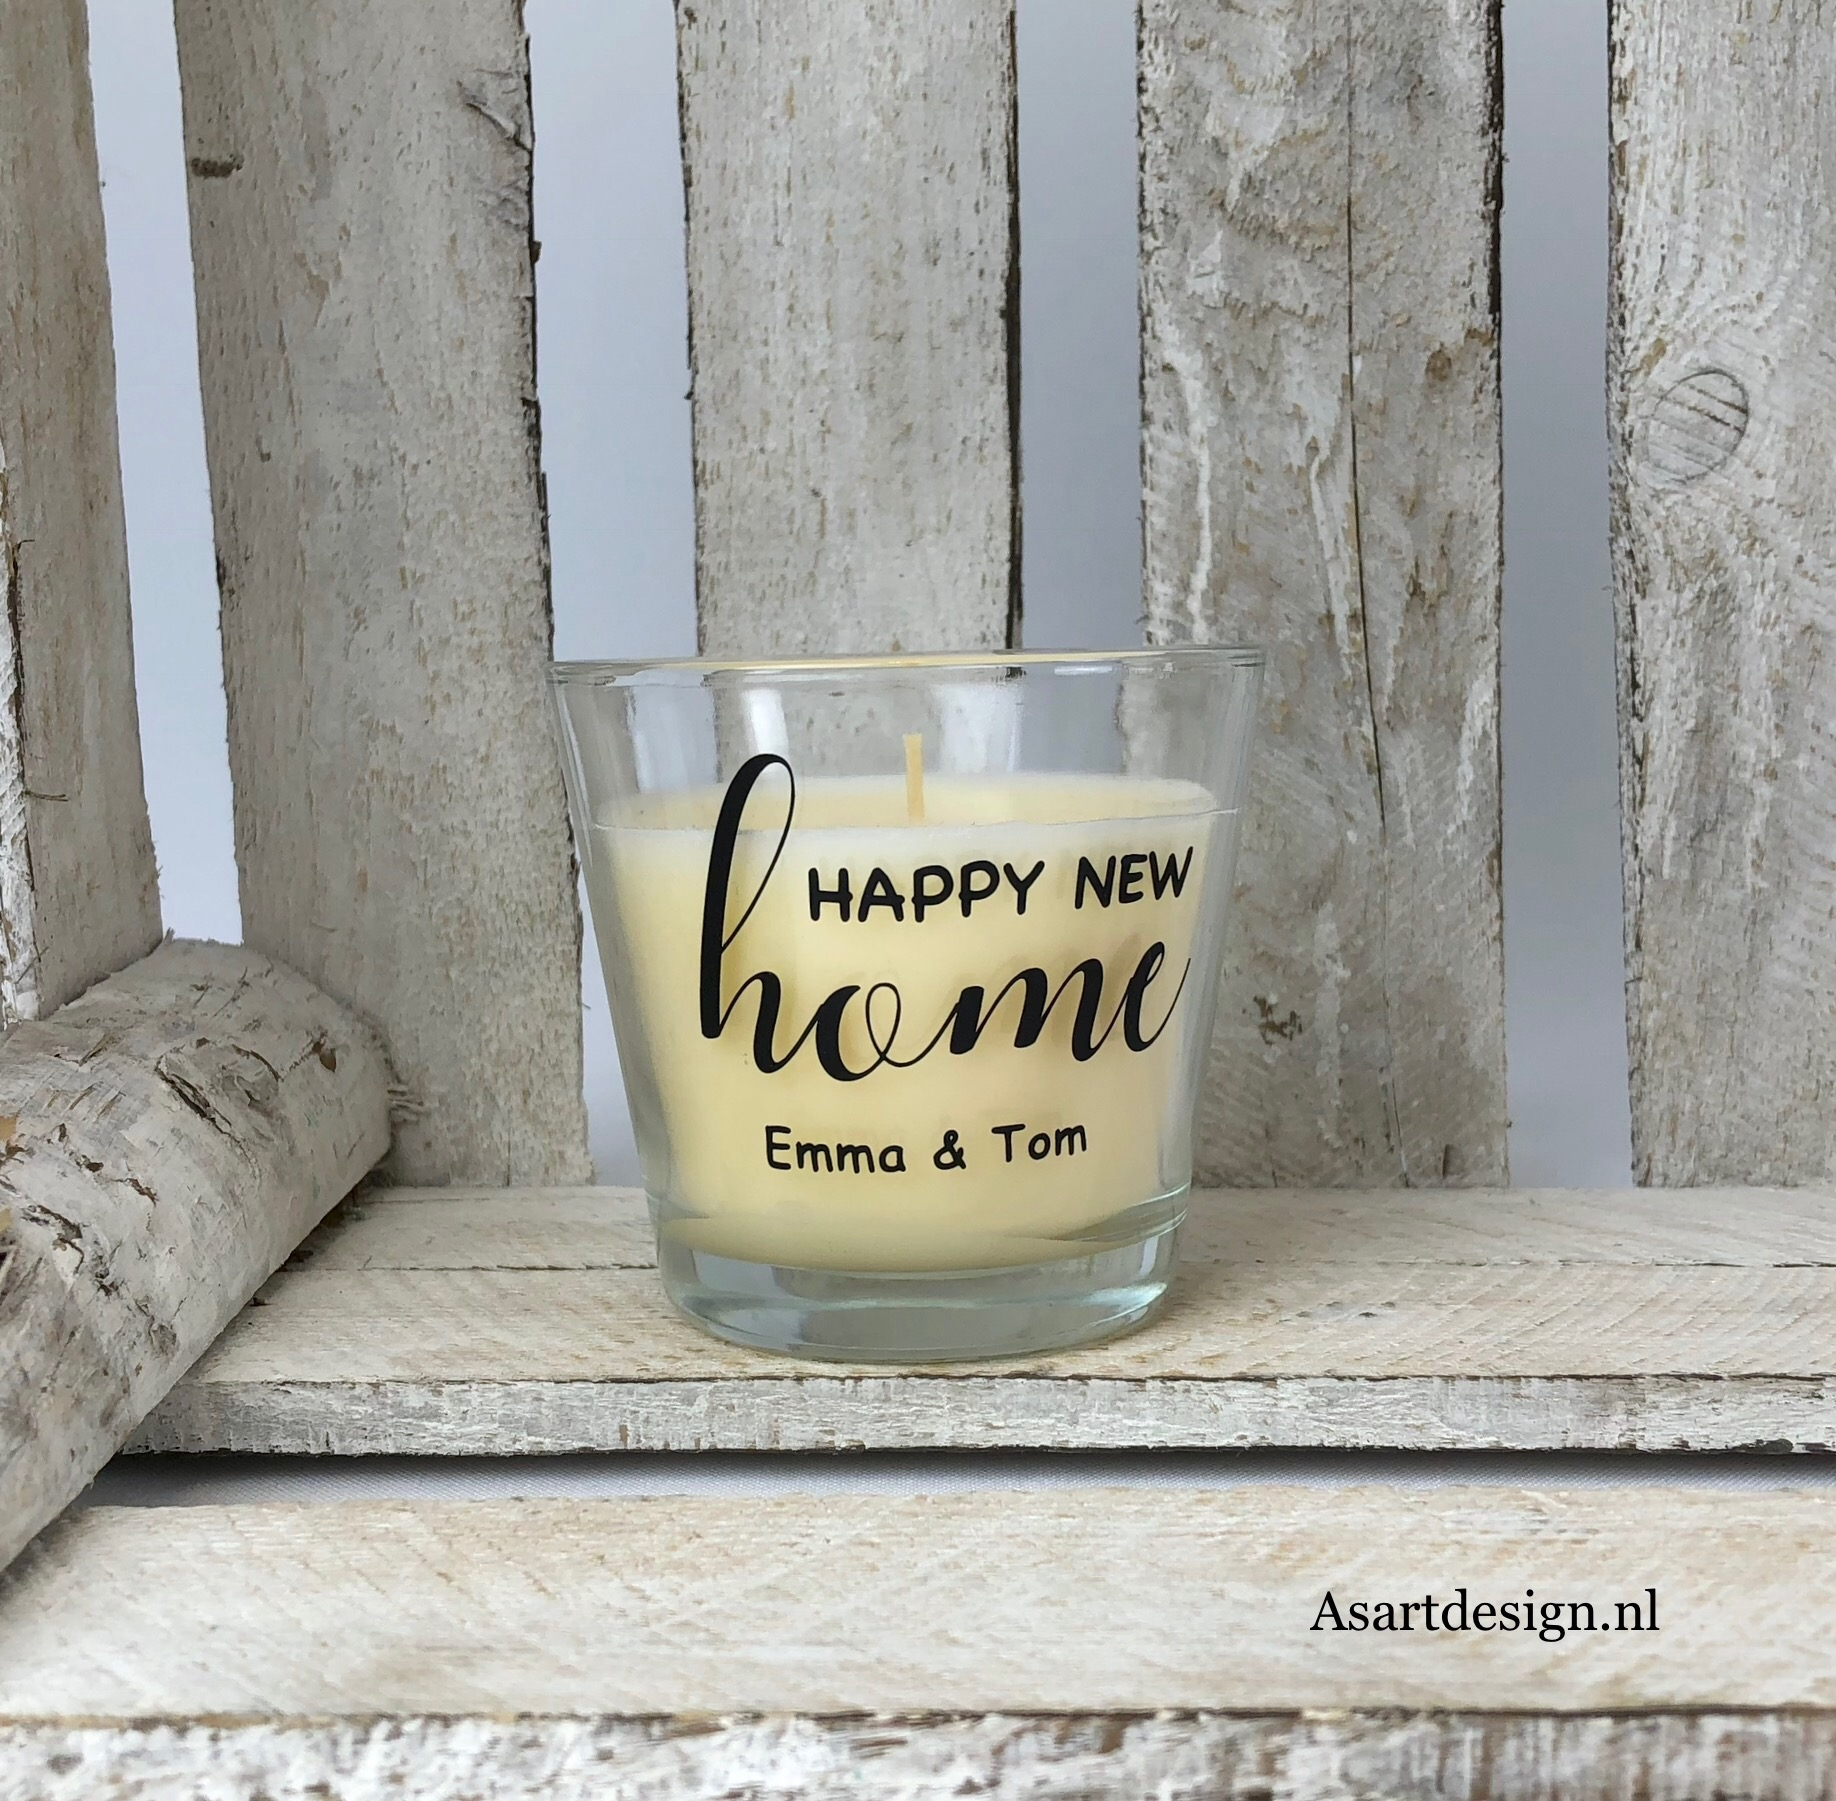 Gepersonaliseerde geurkaars 'Happy new home'